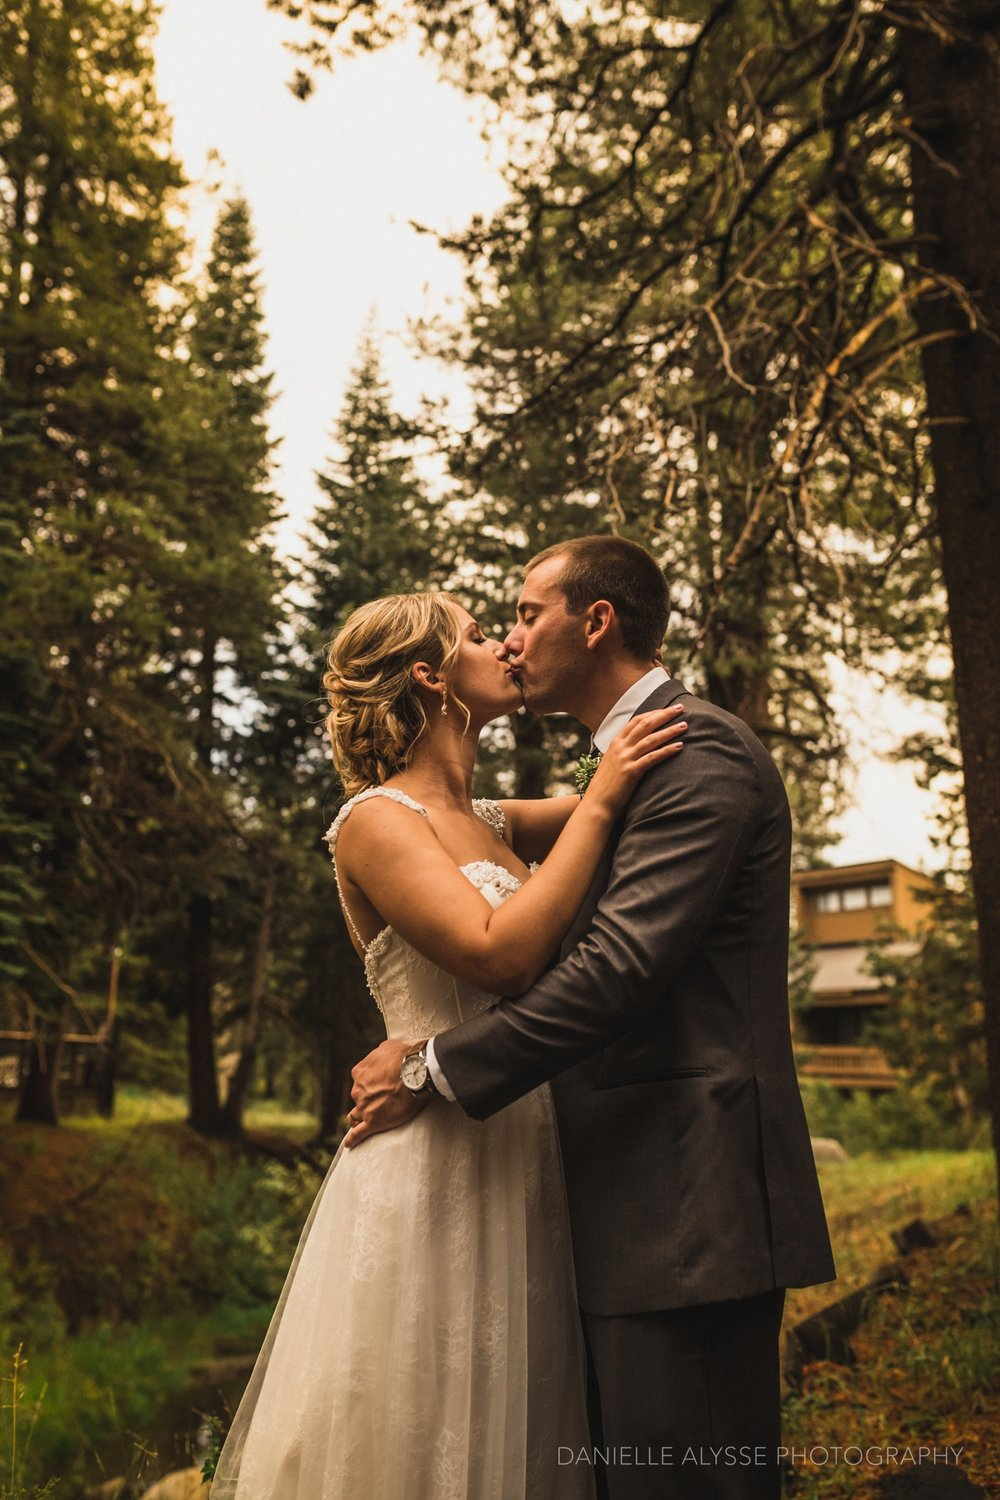 170819_blog_leslie_jeremy_wedding_bear_valley_lodge_arnold_danielle_alysse_photography_sacramento_photographer_deliver689_WEB.jpg